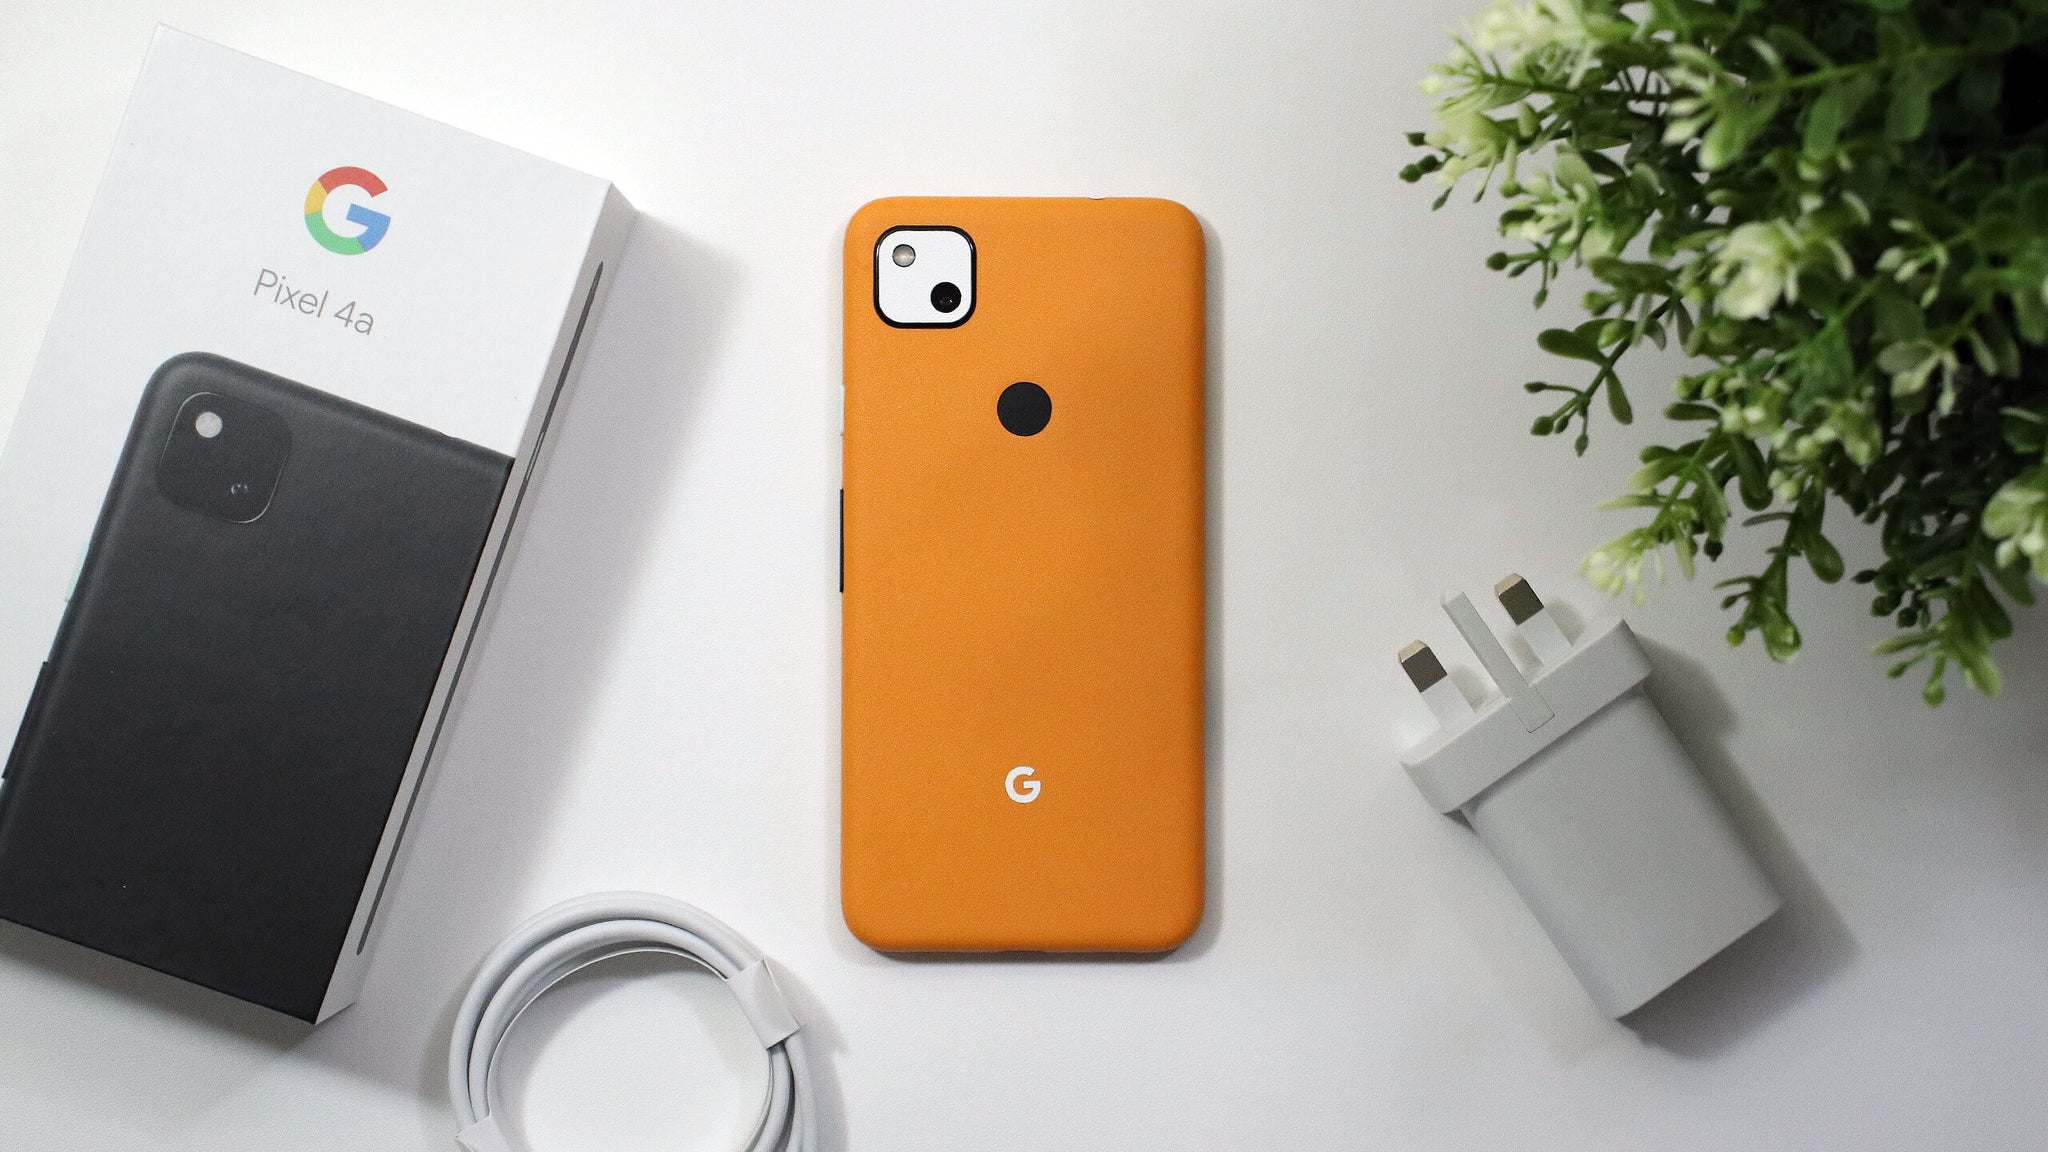 Google Pixel 4a Textured Matt Orange Skins